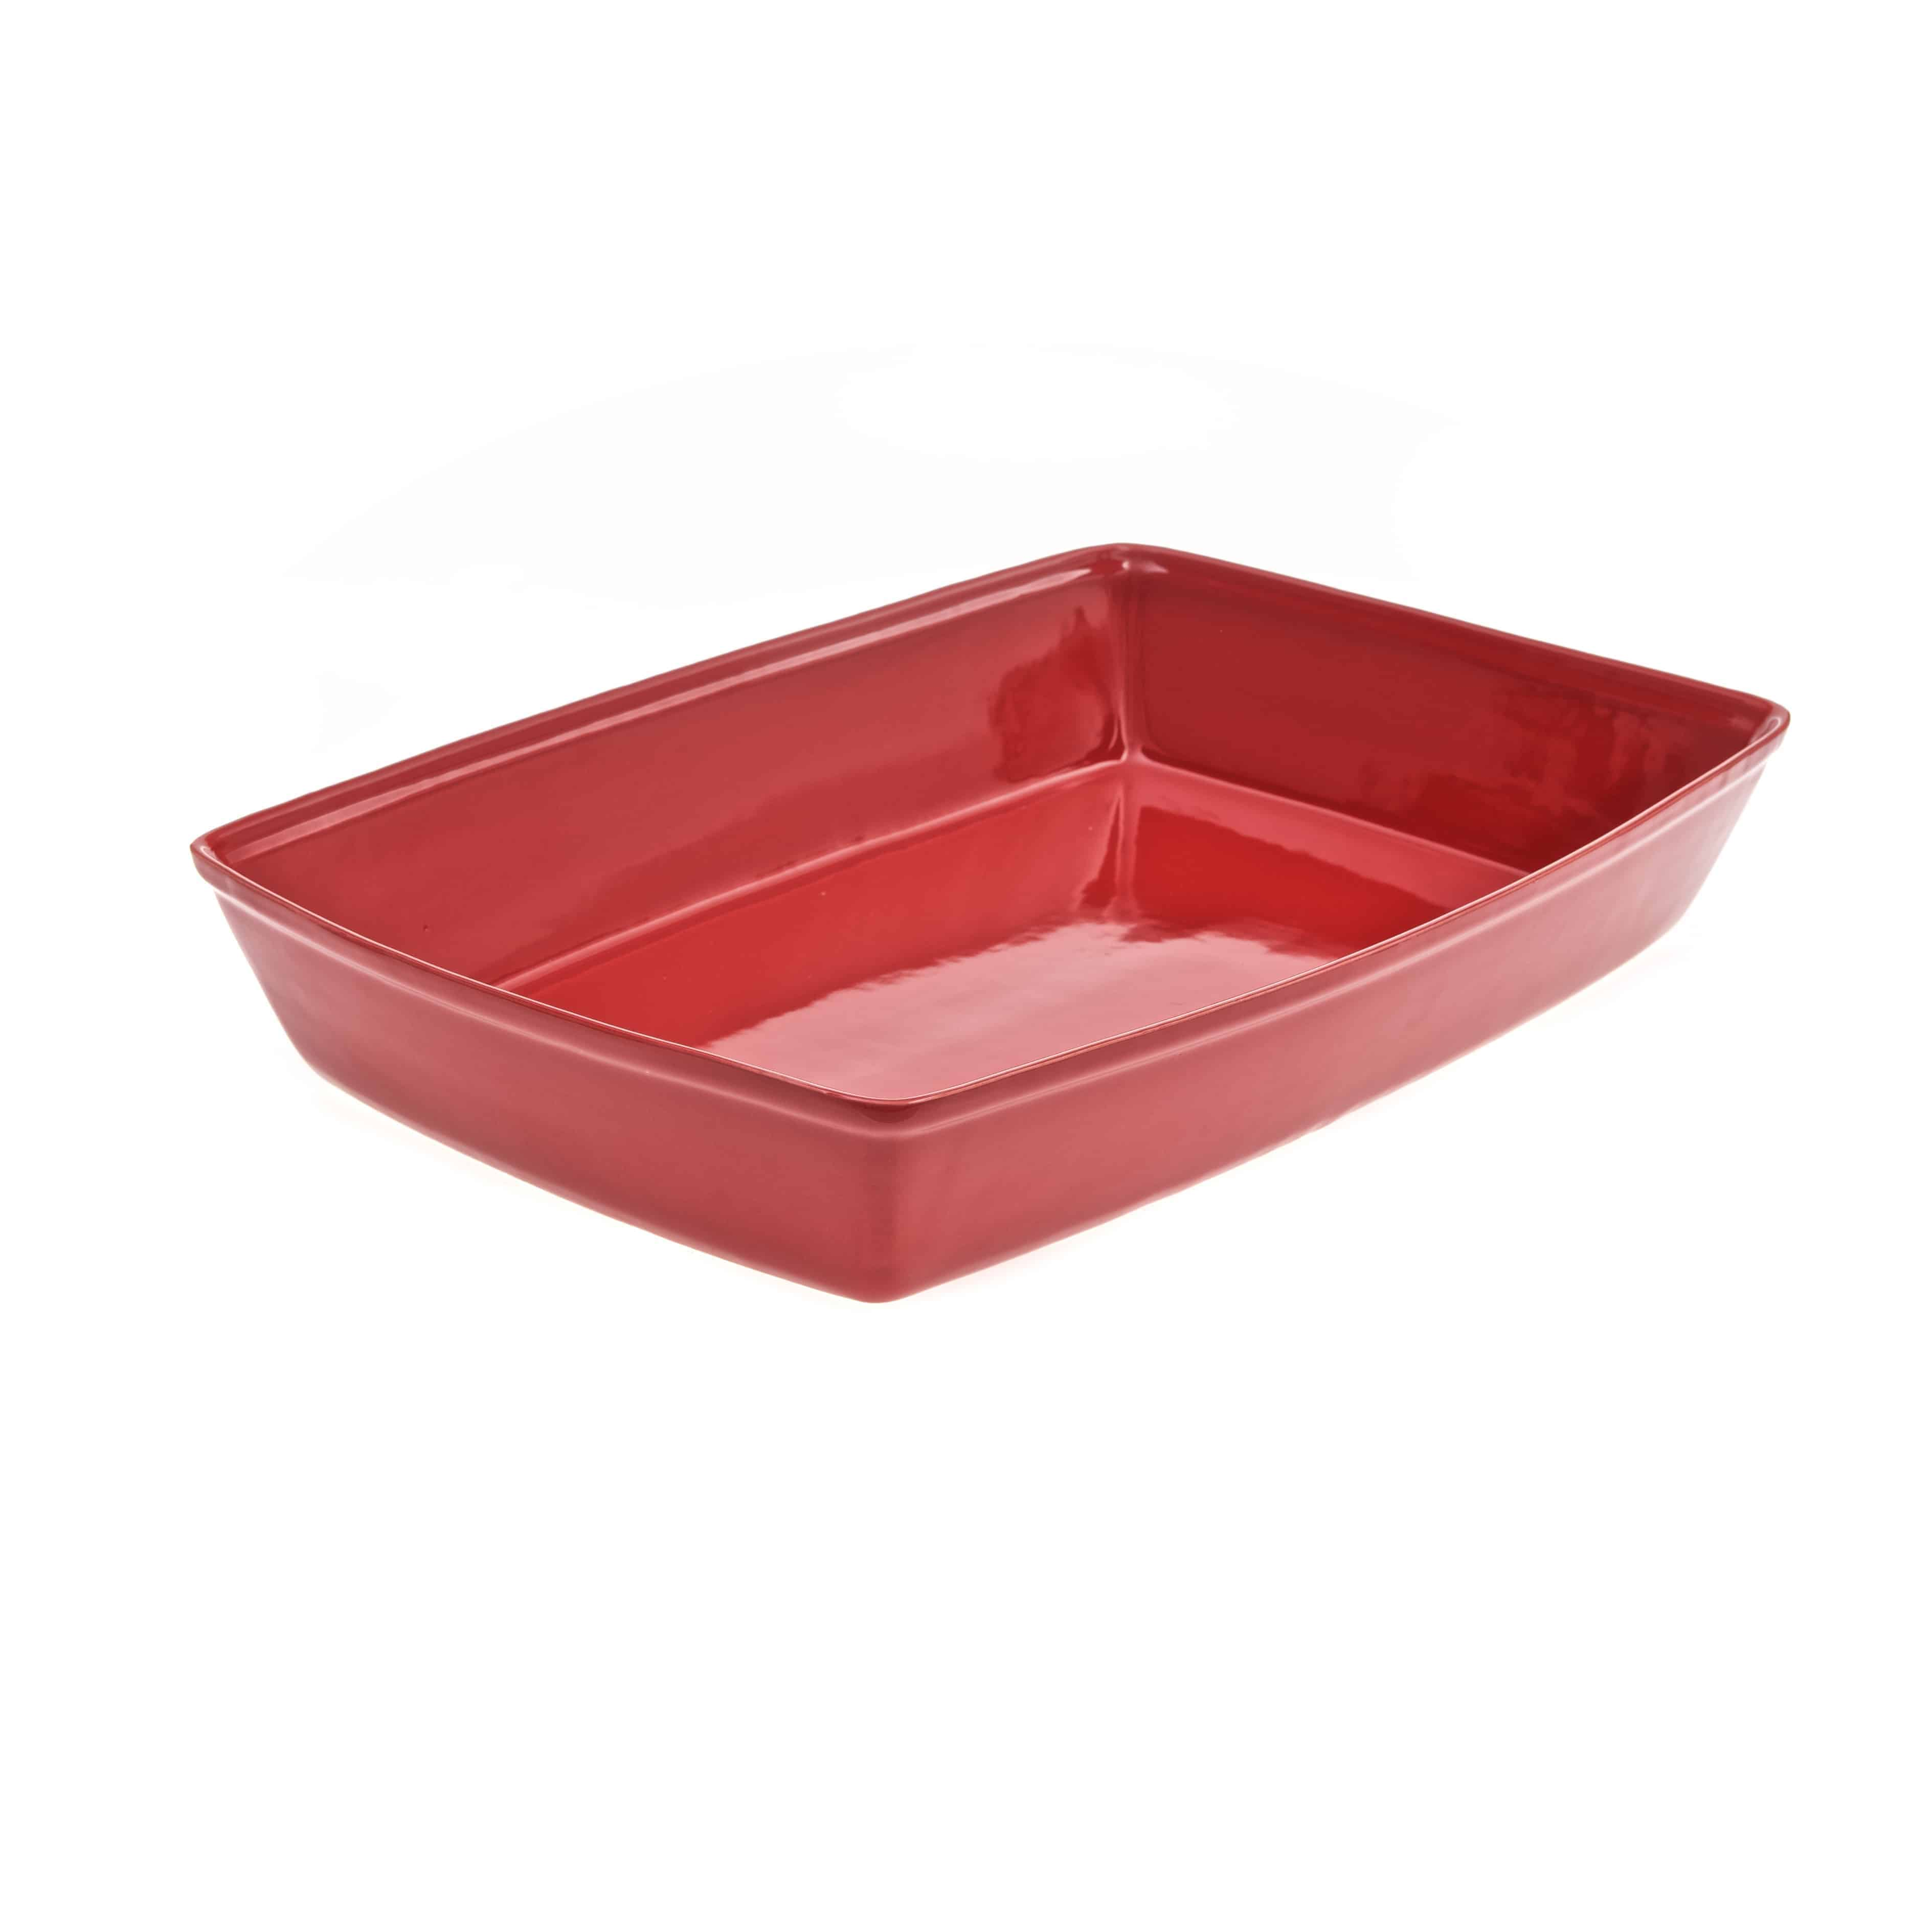 GRU1RD GRUNDY DISH EQUIVALENT RED